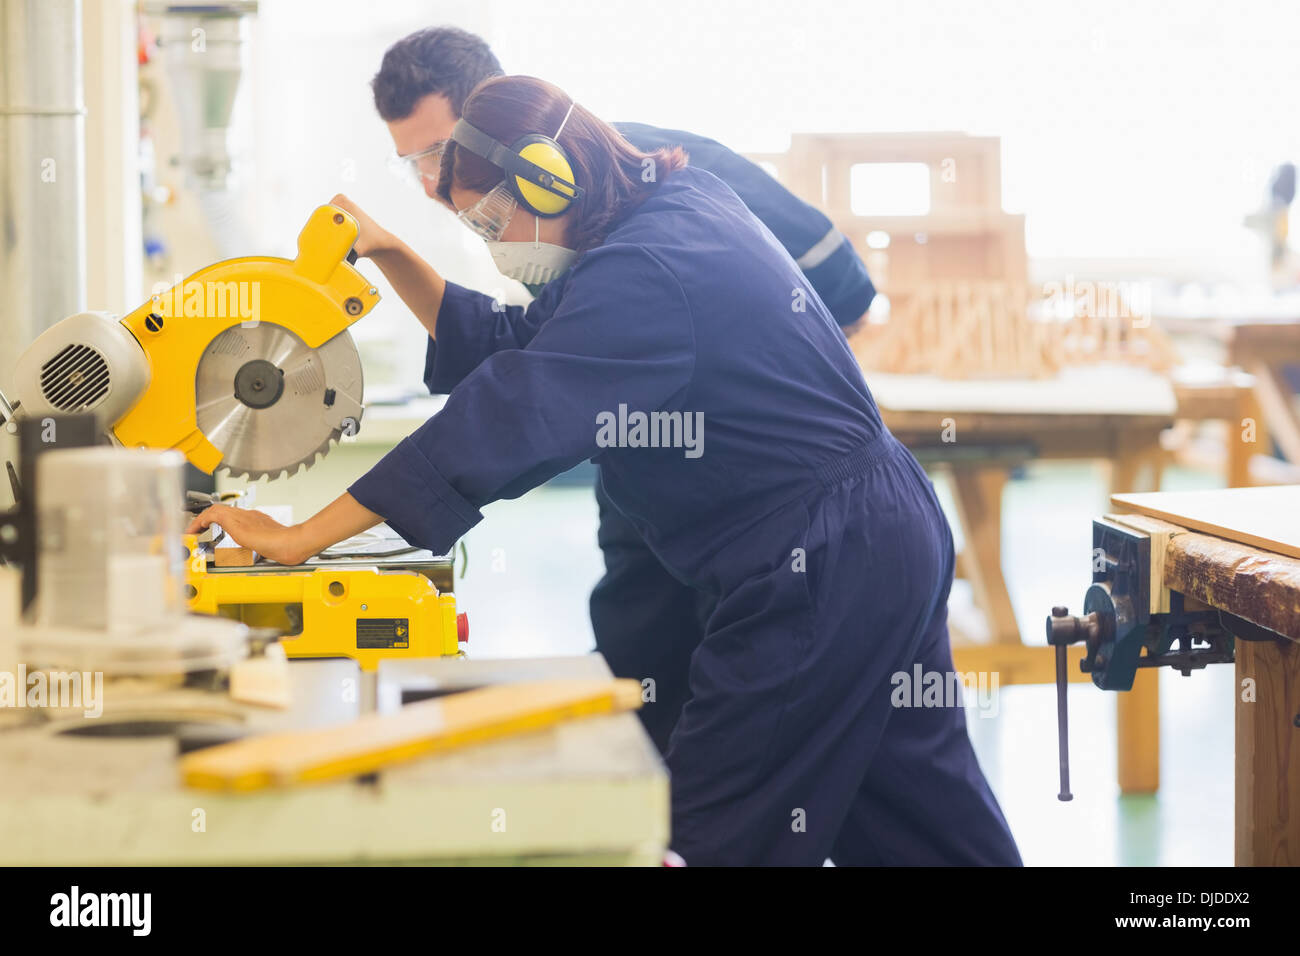 Concentrating trainee sawing piece of wood - Stock Image